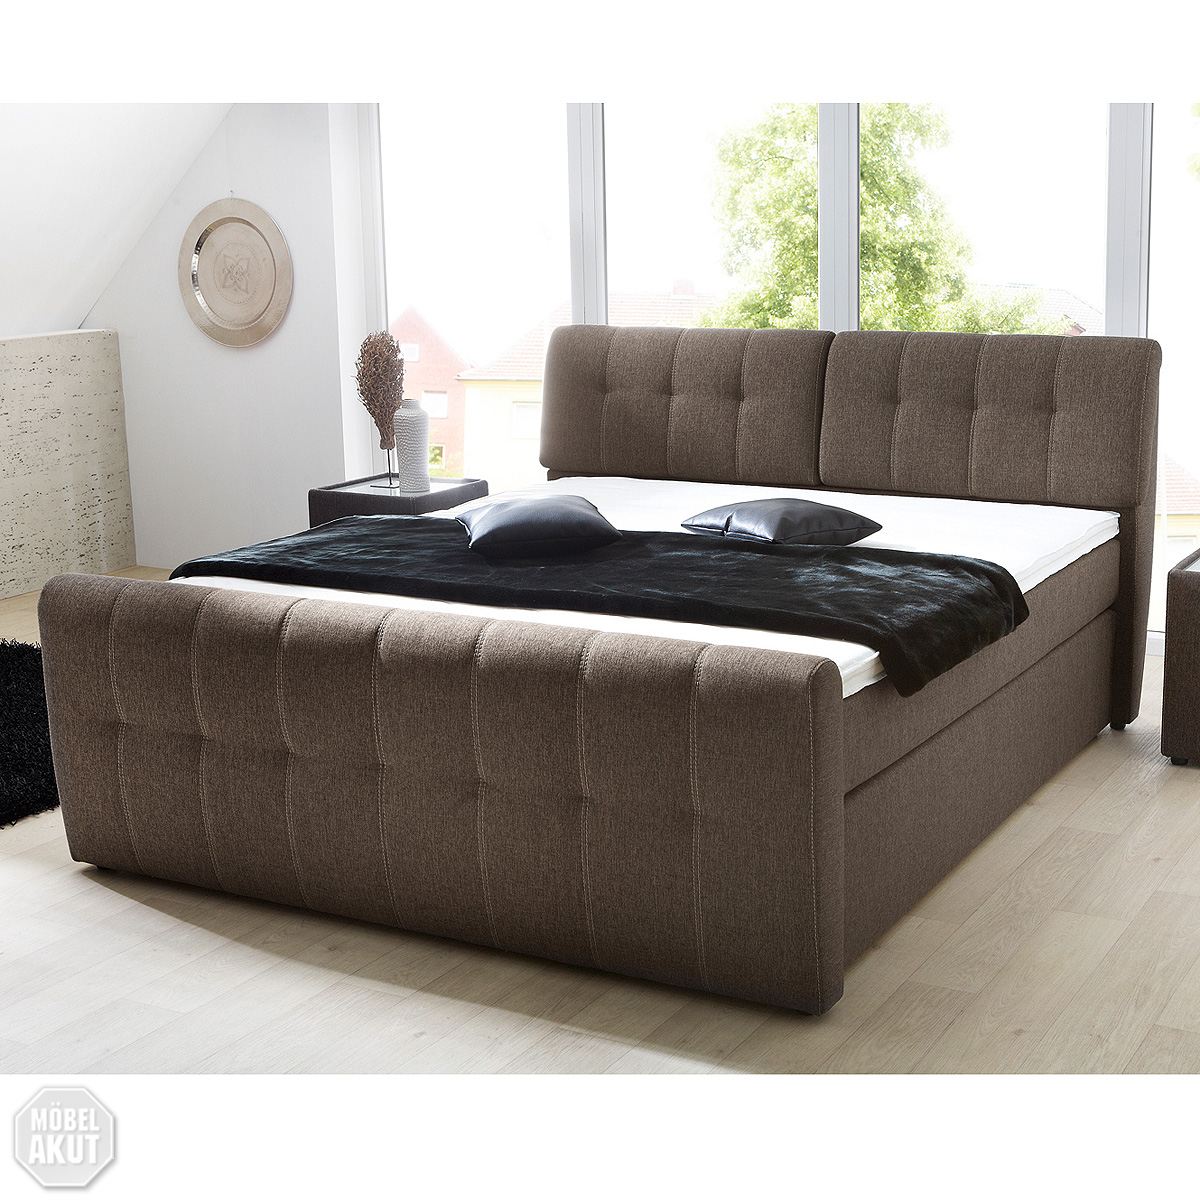 boxspring bett belcanto doppelbett braun verstellbares kopfteil topper 180x200 ebay. Black Bedroom Furniture Sets. Home Design Ideas